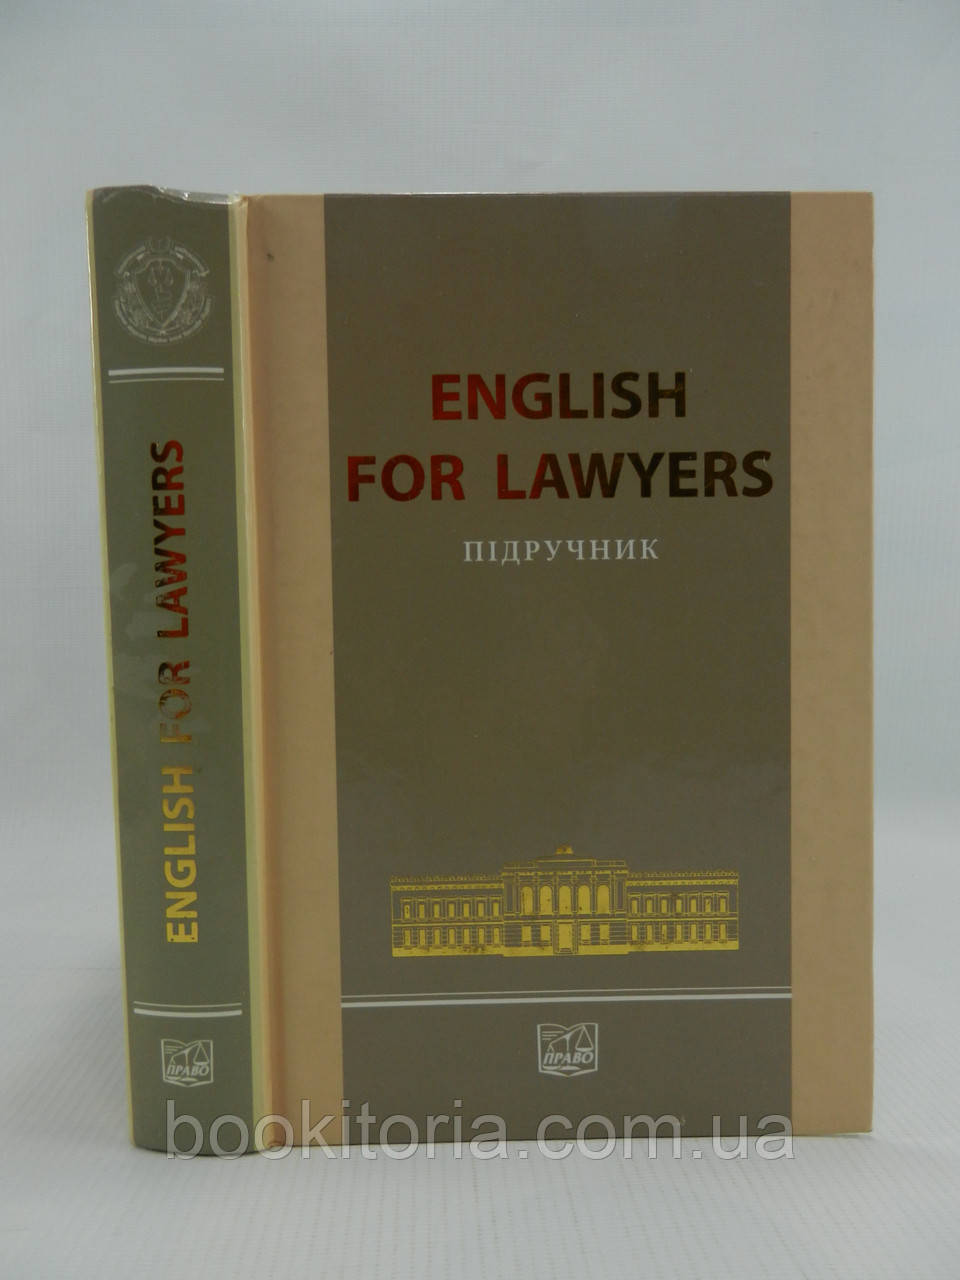 English for Lawyers (б/у).